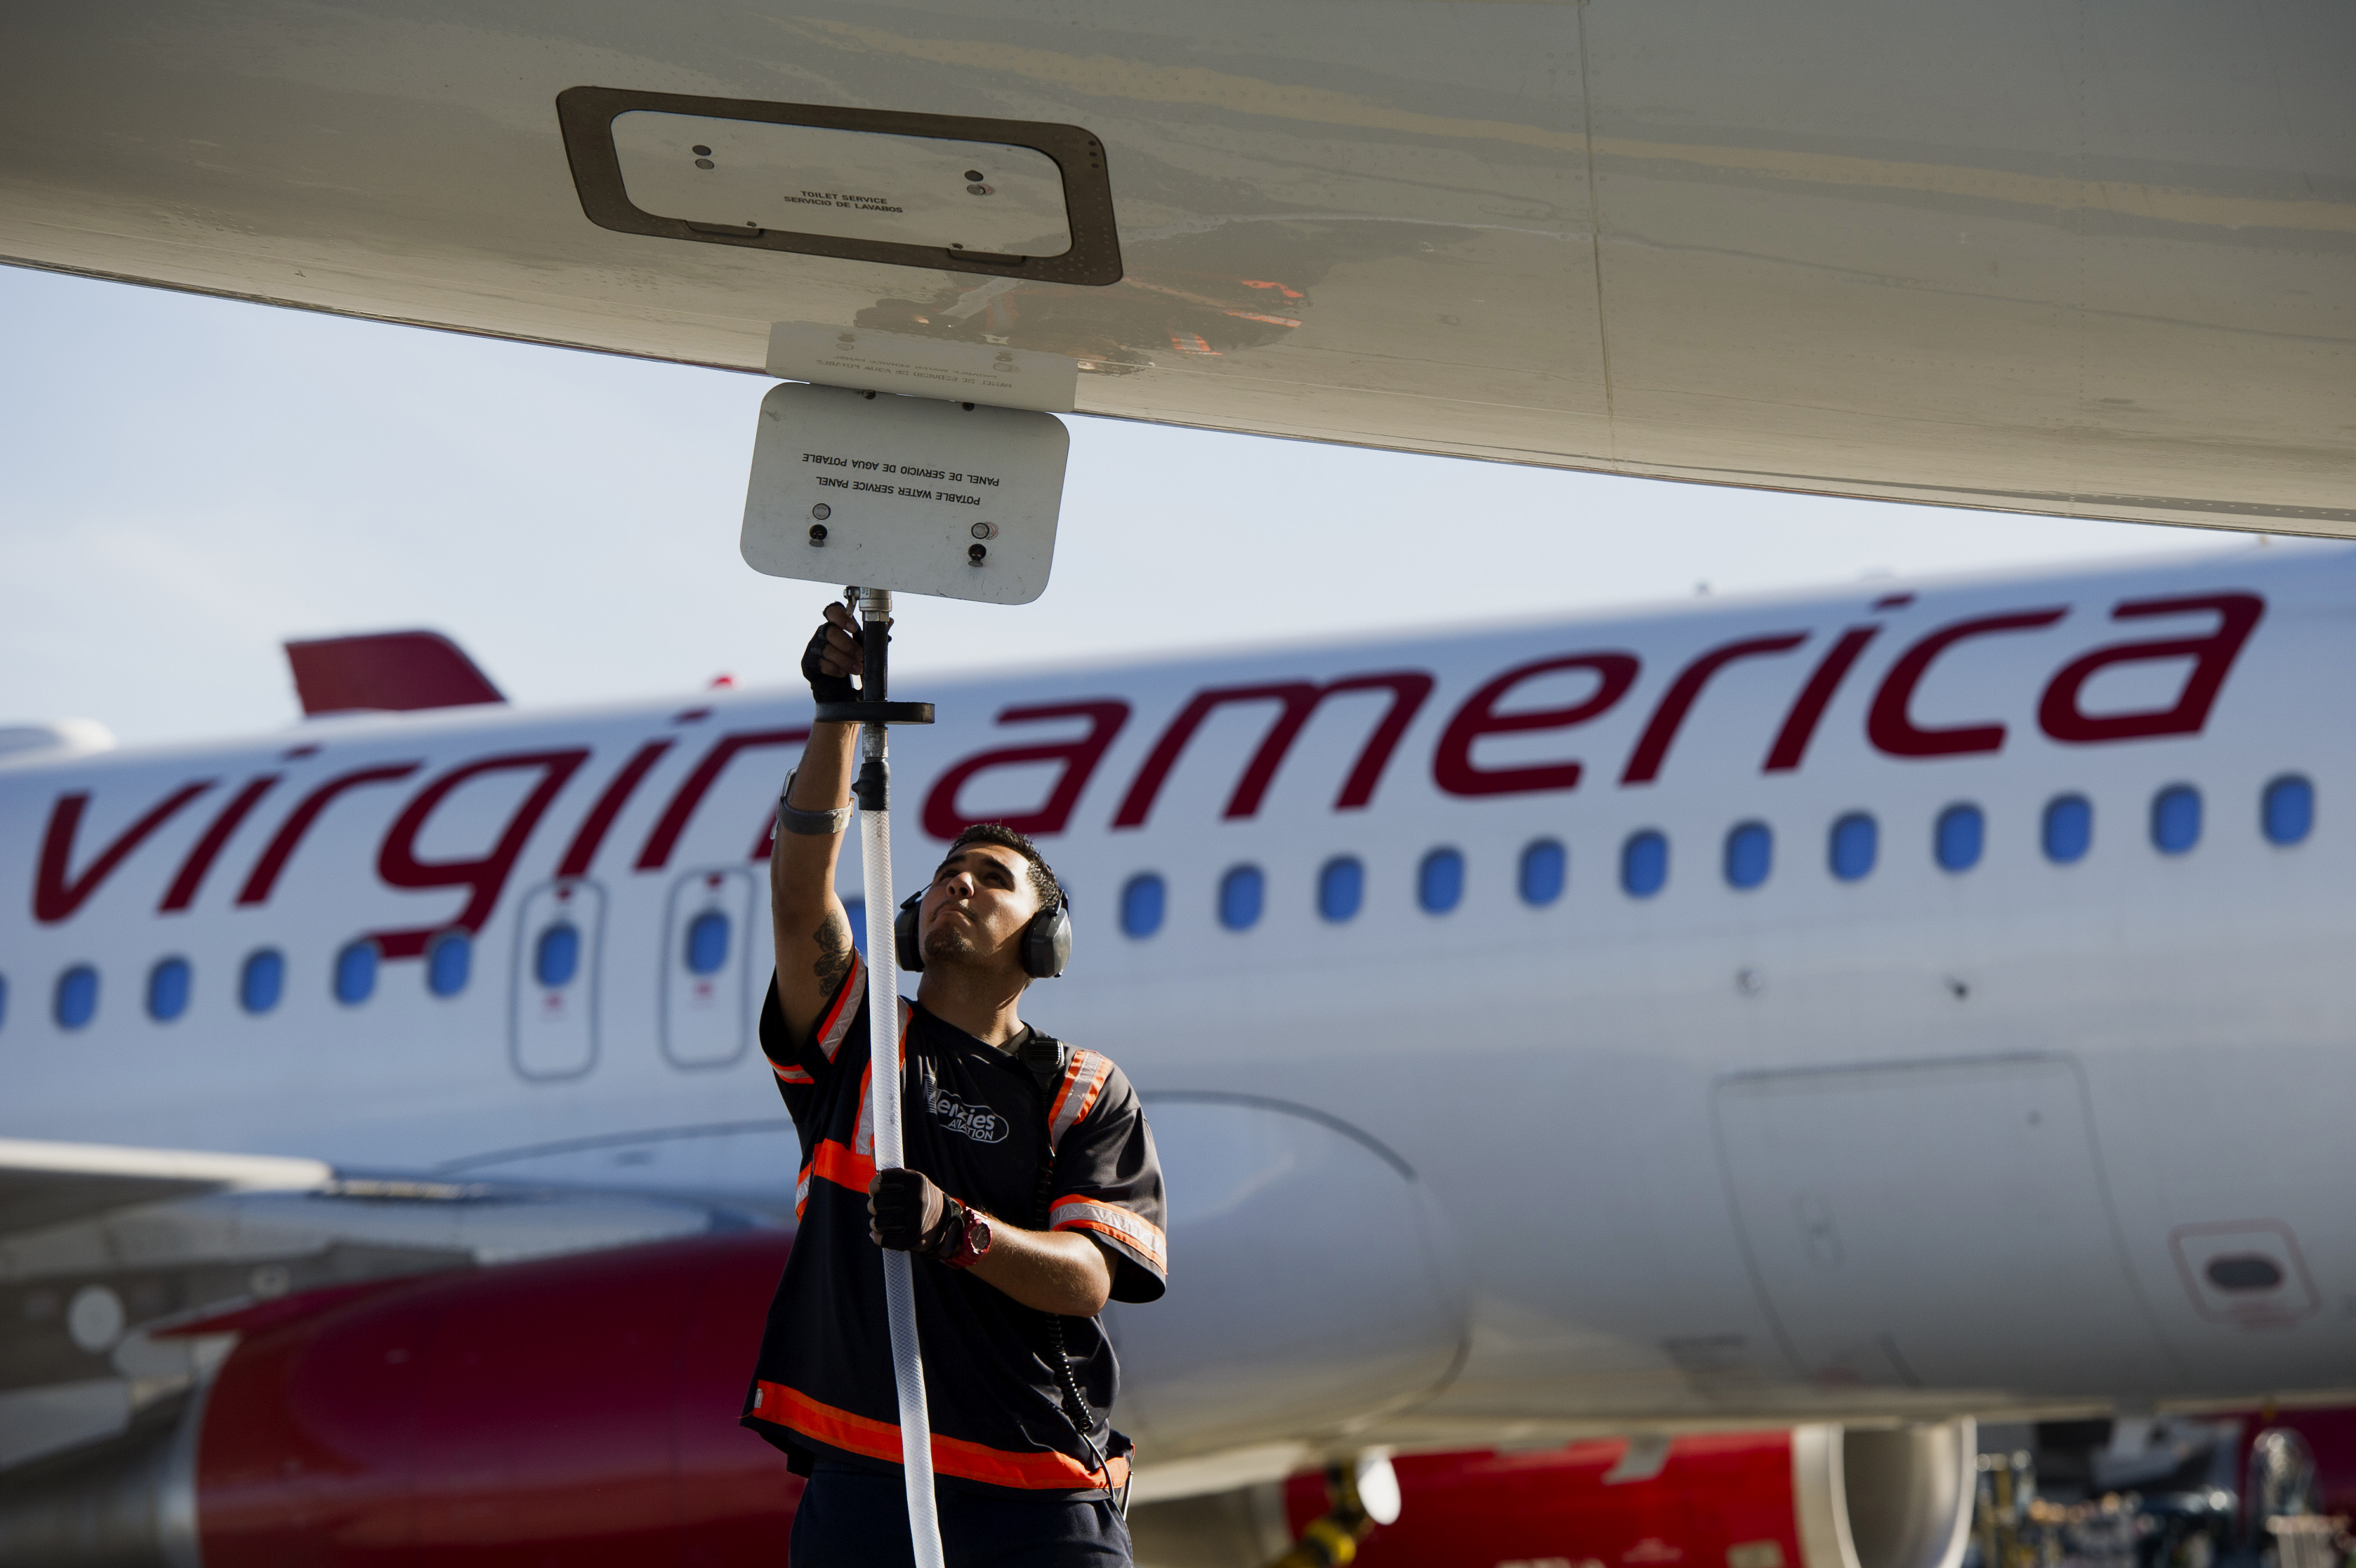 Operations Inside The Virgin America Inc. Terminal After Filing For IPO